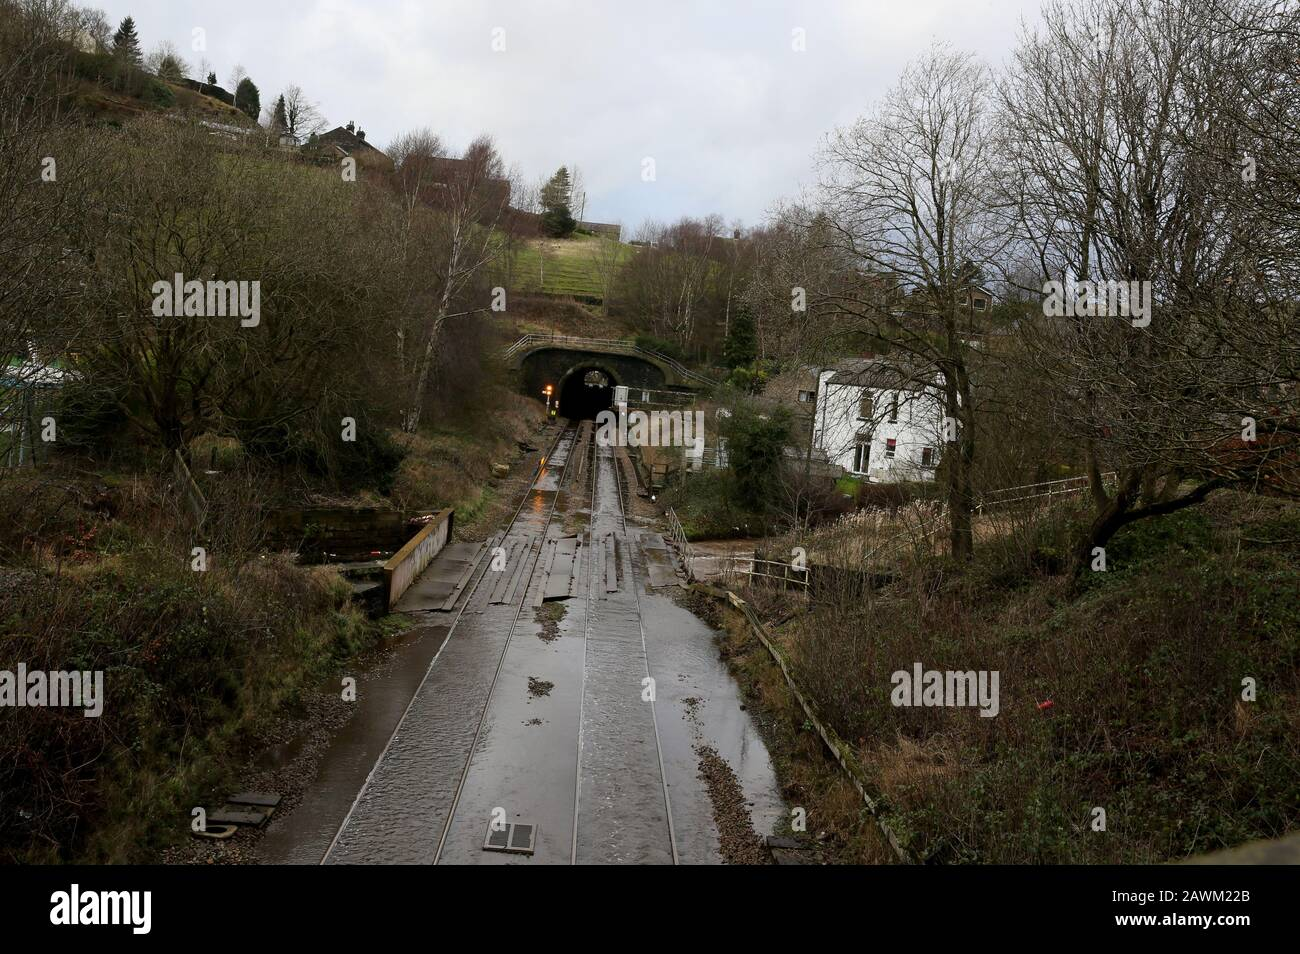 Marsden, UK. 9th February, 2020. Storm Ciara leaves a trail of damage in the Calder valley.  Rain has washed stones and  a railway sleeper onto the Rochdale to Todmorden Road.  A tree has fallen across the railway line.  A tractor is been used to take away flood water and empty it into the Rochdale canal.  Walsden, Calder Valley, West Yorkshire, UK. Credit: Barbara Cook/Alamy Live News Stock Photo